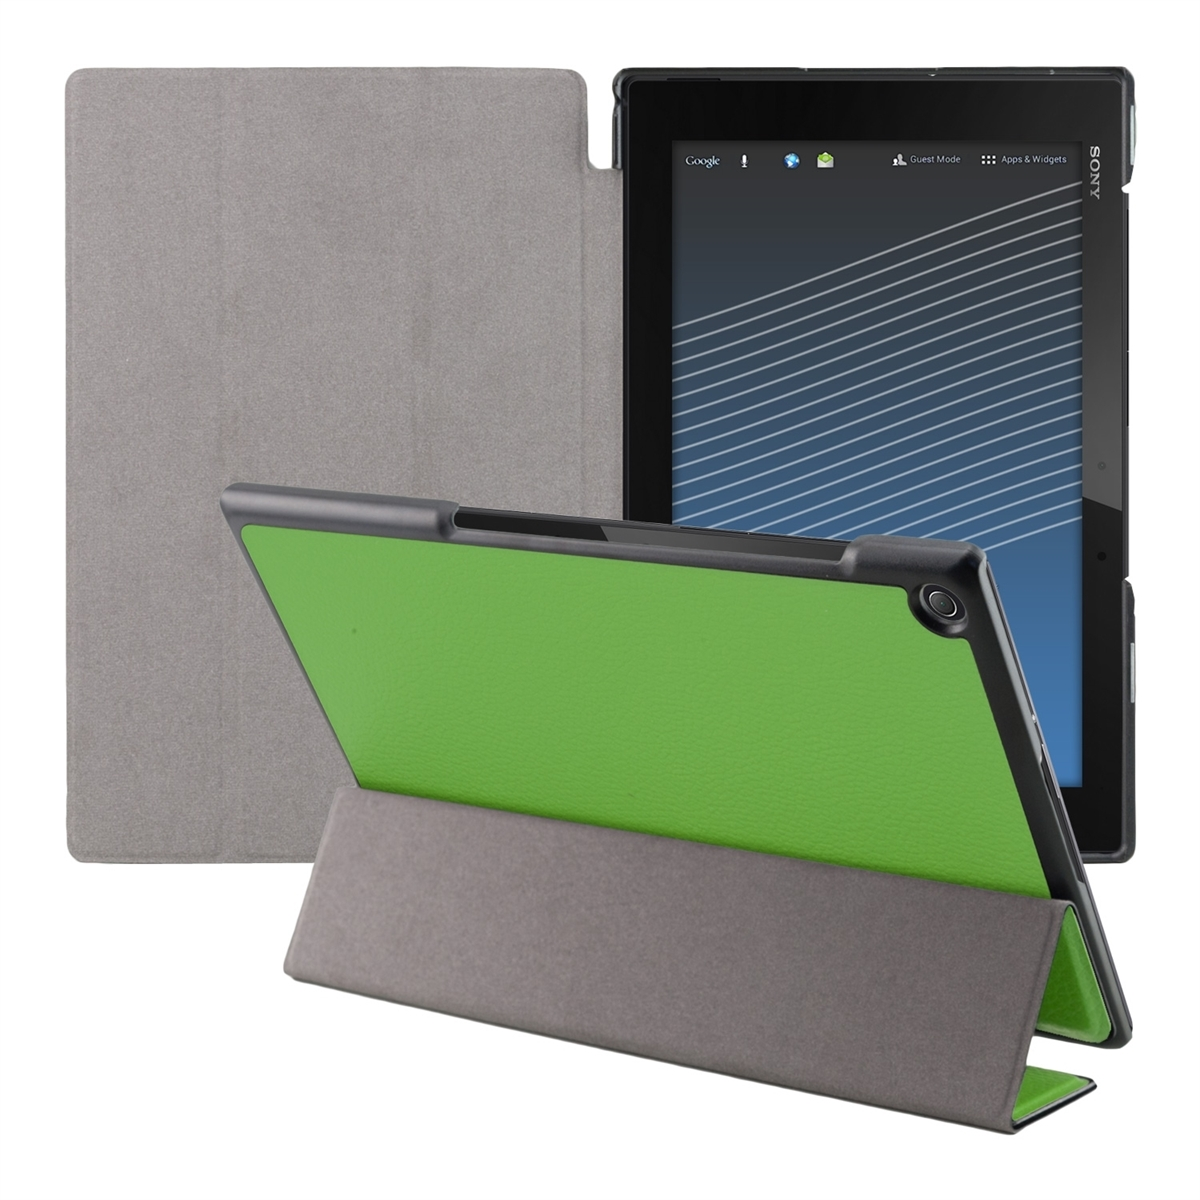 Google Play sony xperia z2 tablet hard case monotherapy